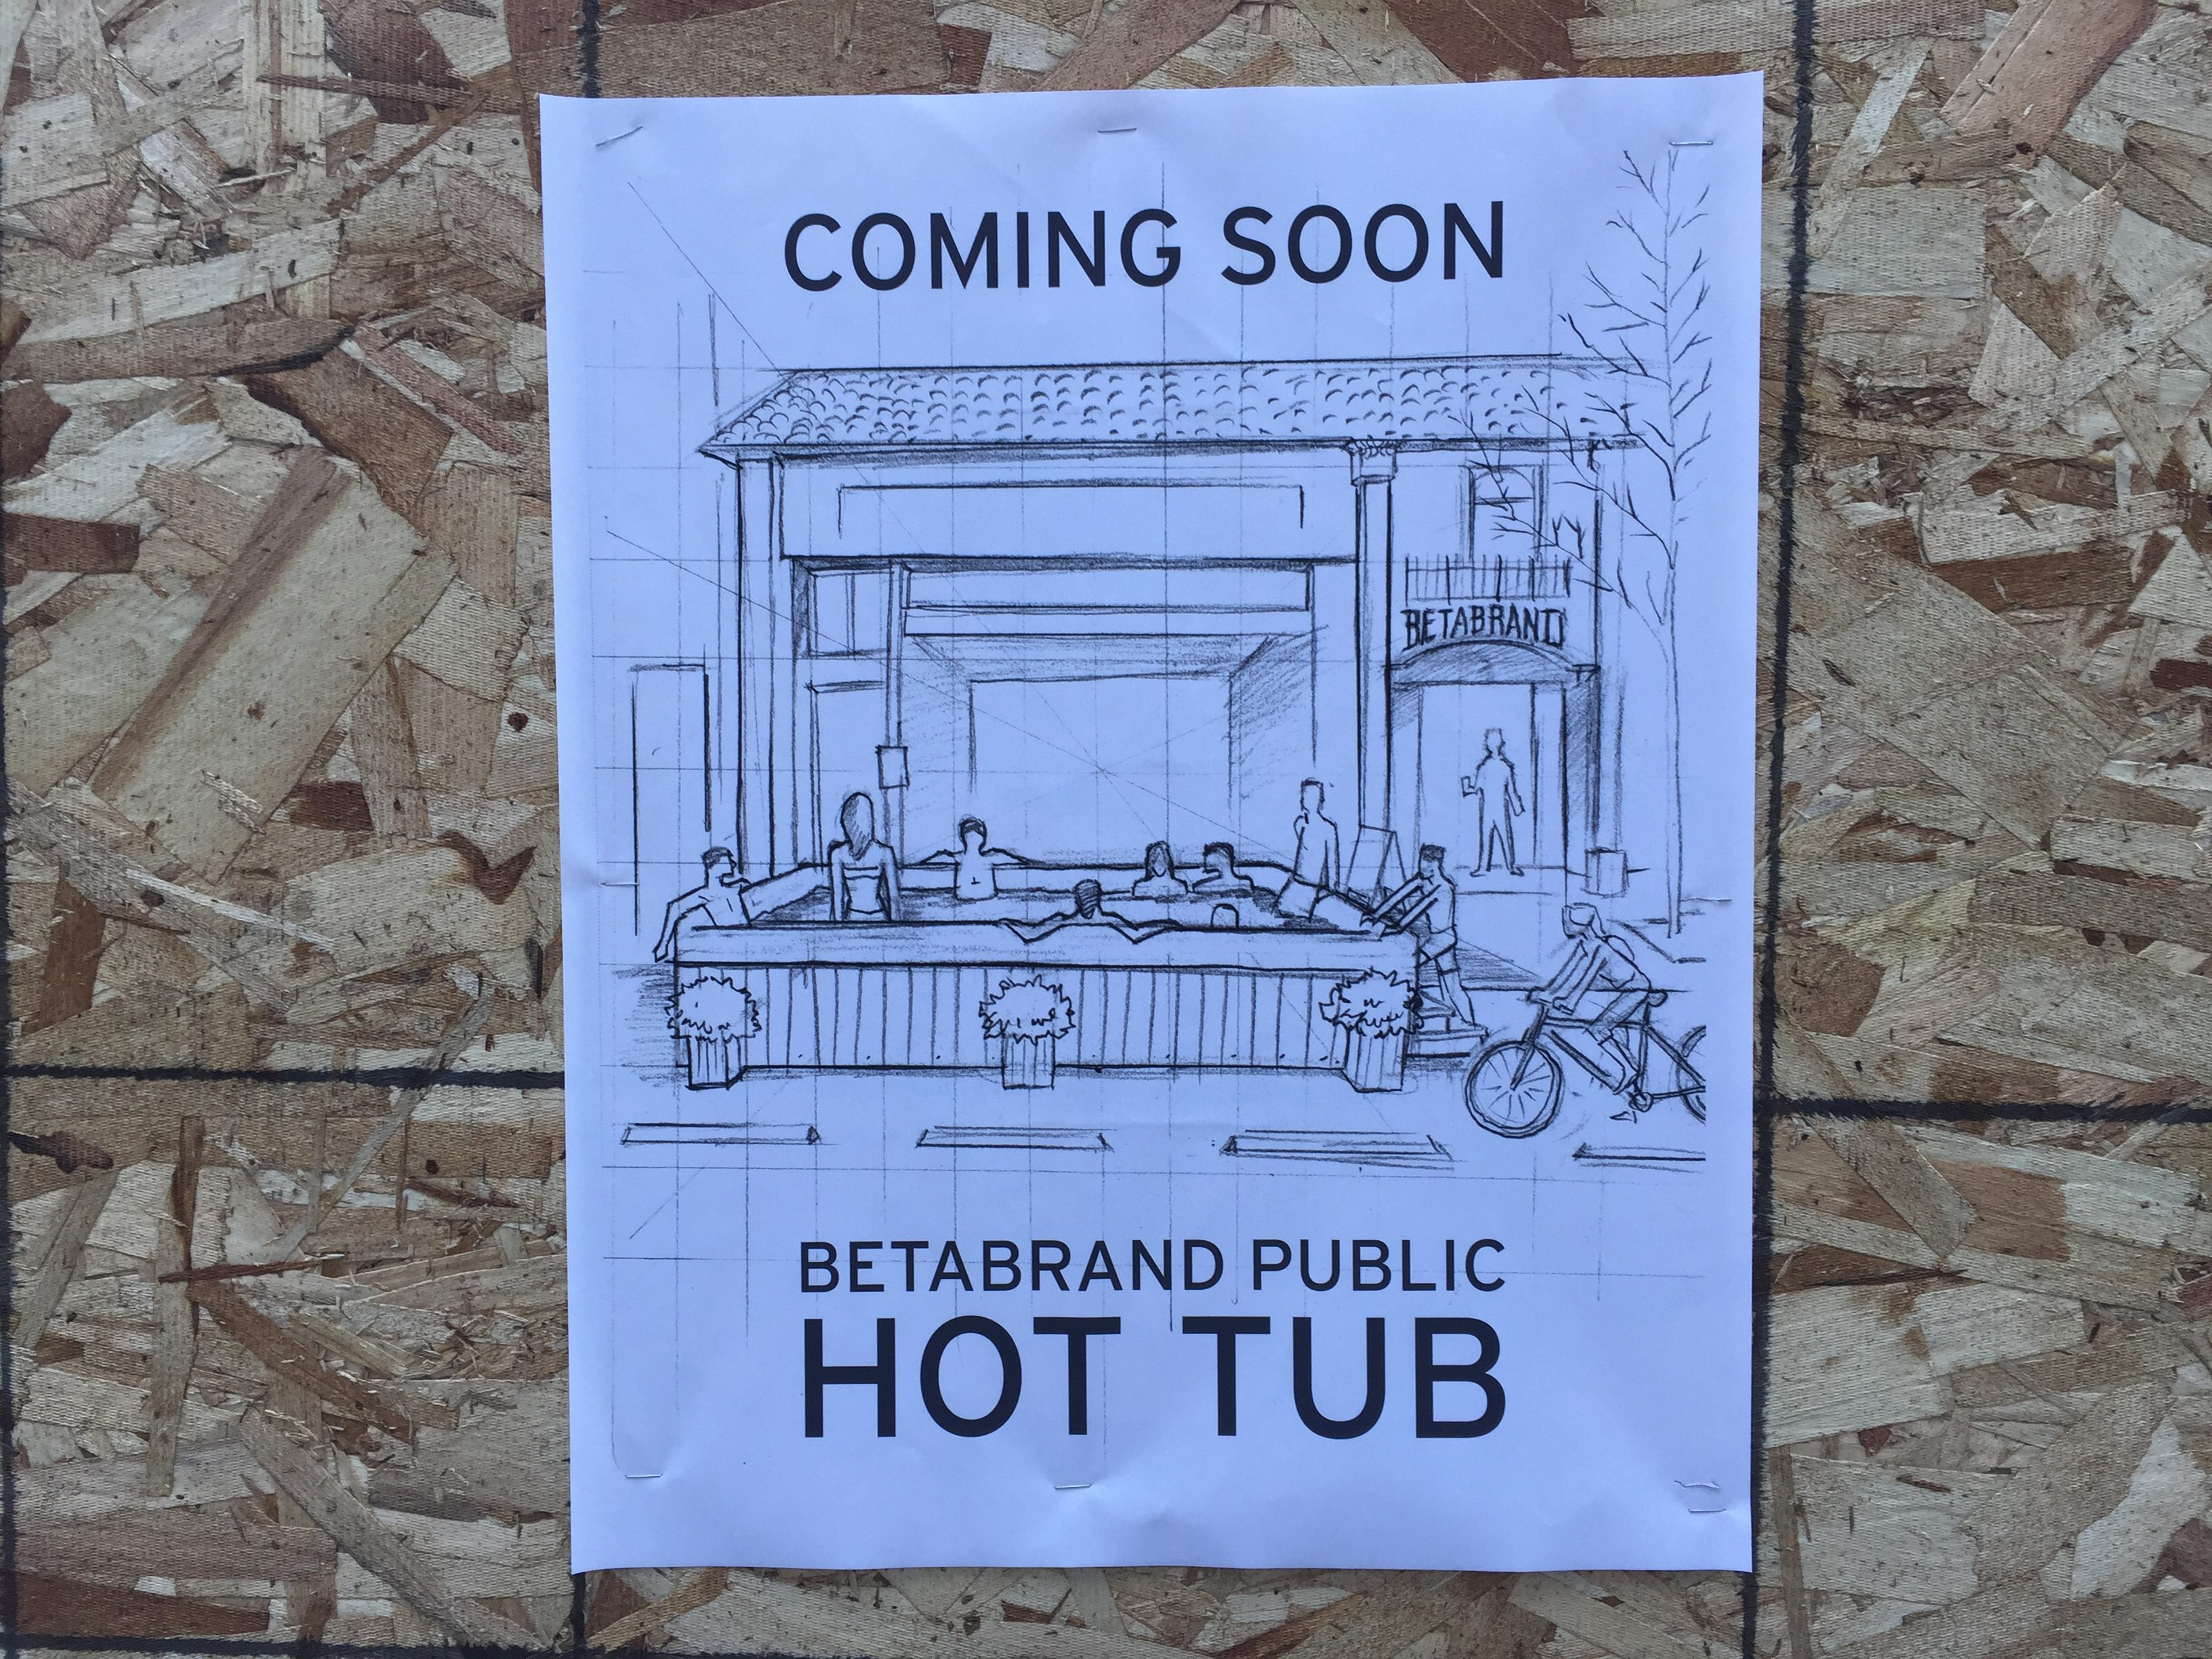 Neighborhood Notes: Hot tub prank, fire aid, and too many birthdays